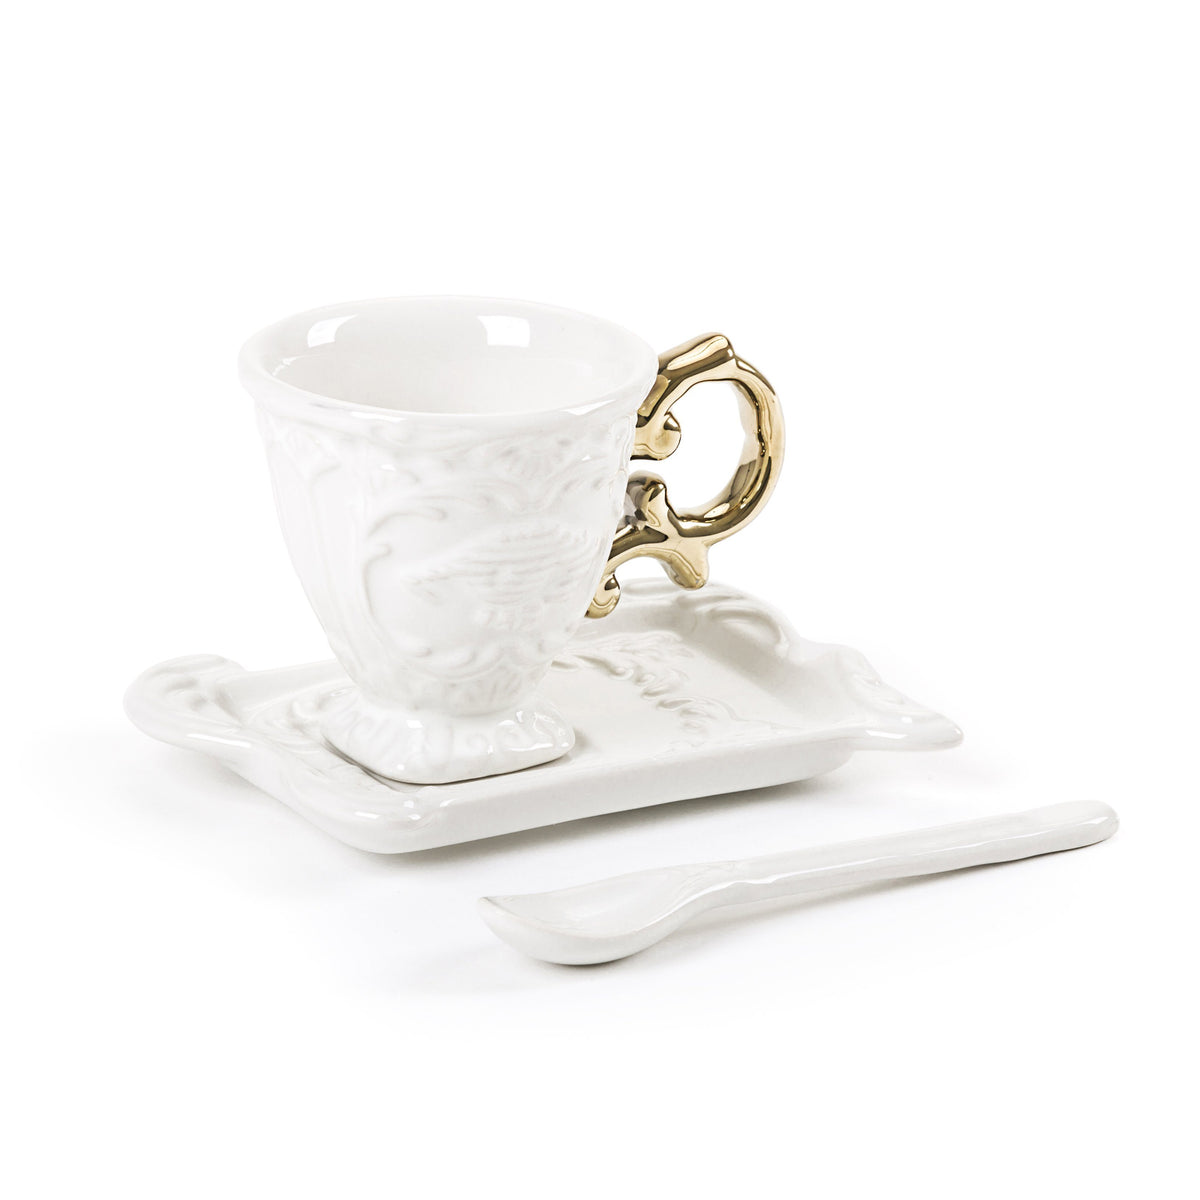 I-Wares / I-Coffee Set / Gold Seletti Seletti